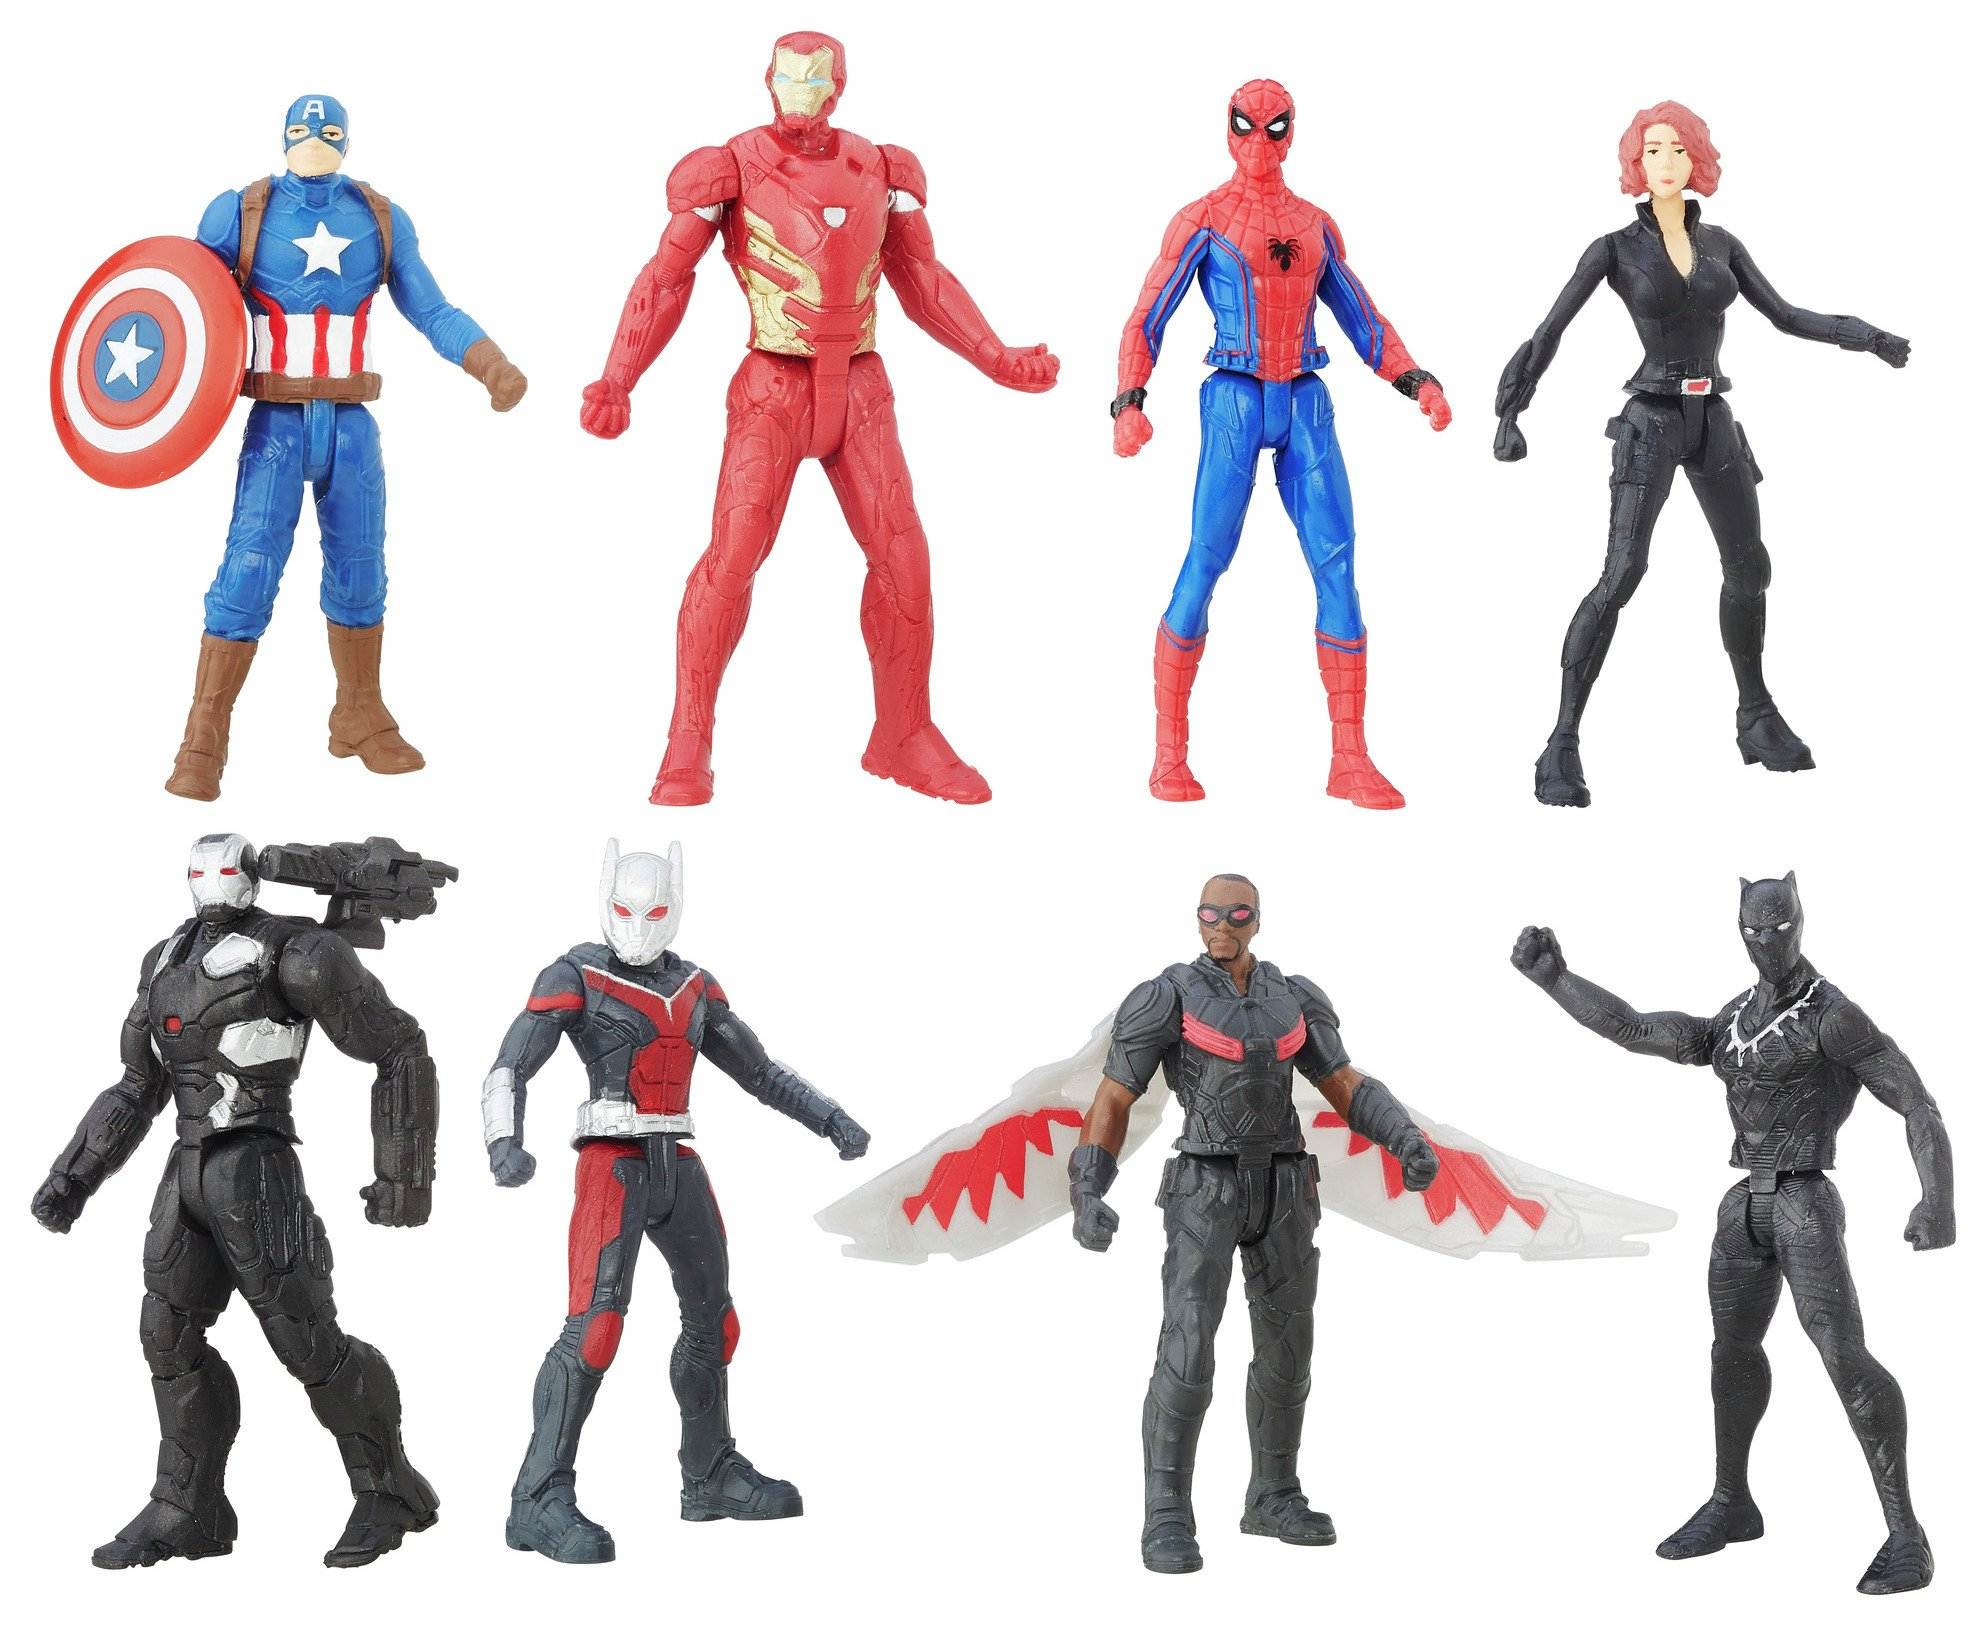 Image of Avengers - 8 Figure Collection Pack.